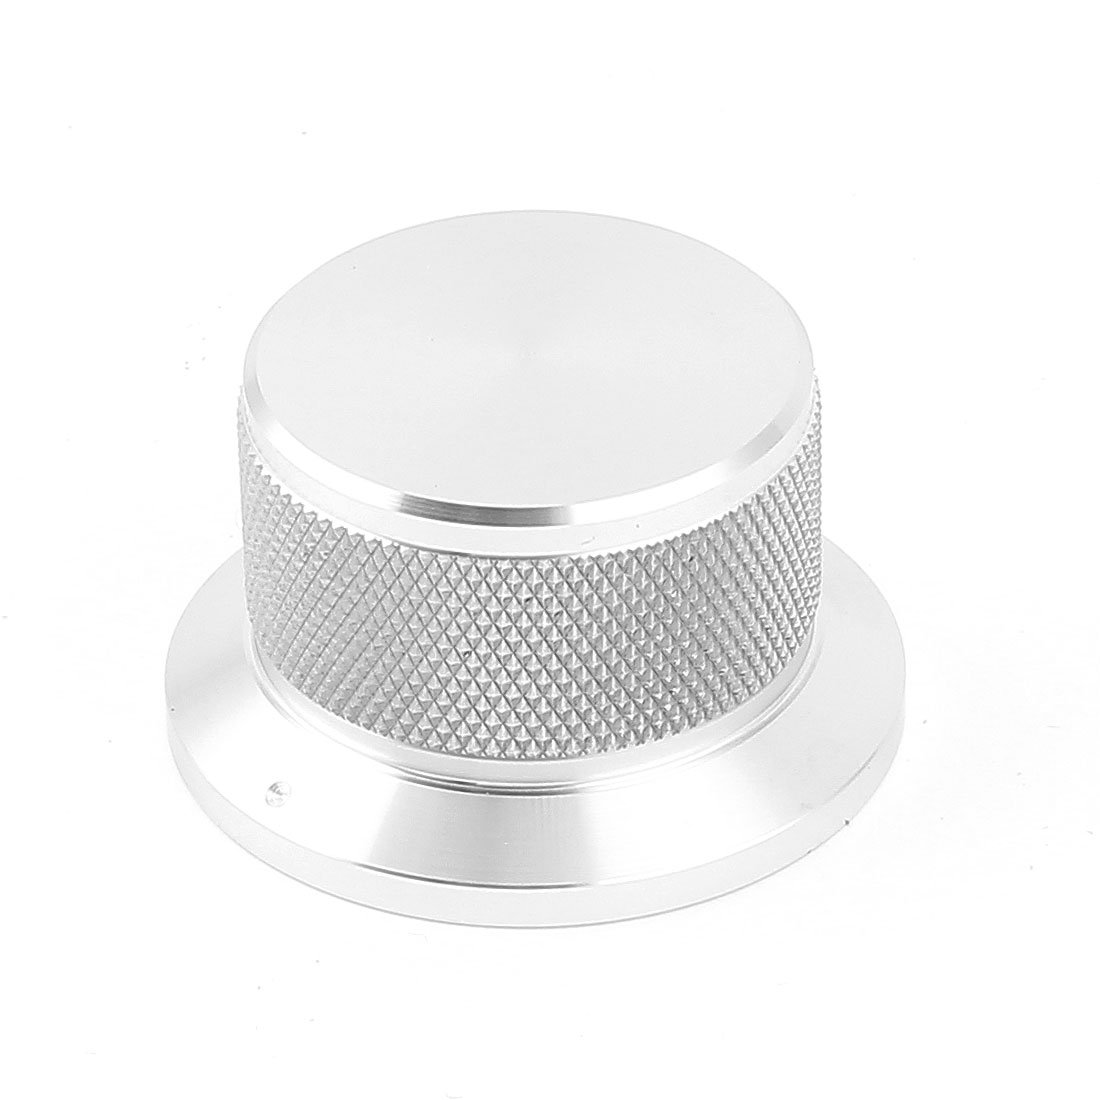 Uxcell a15020500ux0447 CNC Machined Aluminum Alloy Potentiometer Control Knob, 6 mm Hole, 44 mm